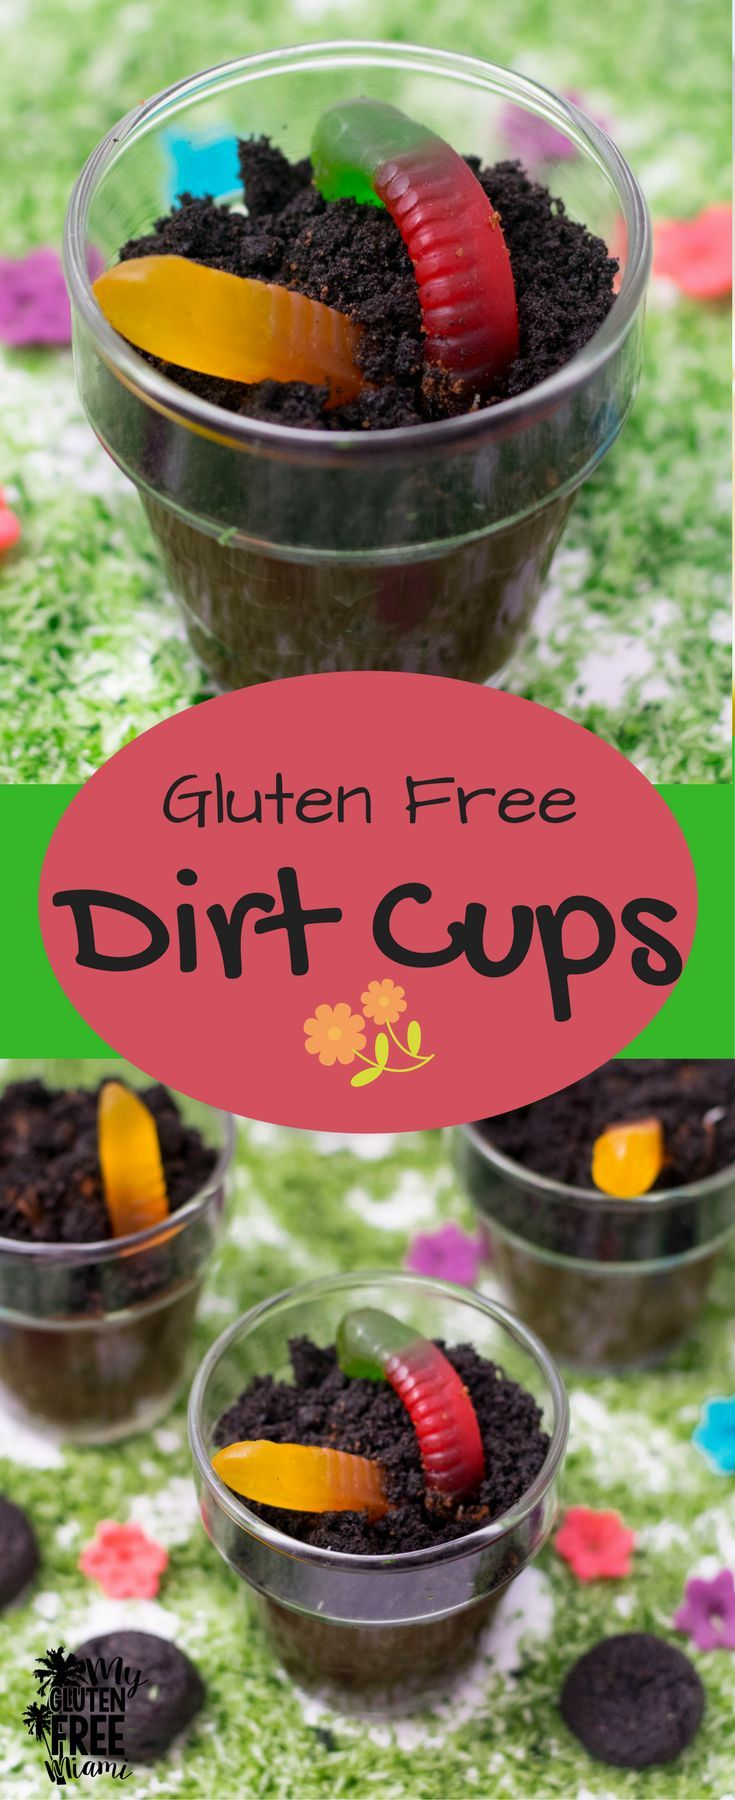 Creamy pudding, crunchy cookies and gummy worms, these gluten free dirt cups are a fun way to celebrate Earth Day! via @GLUTENFREEMIAMI